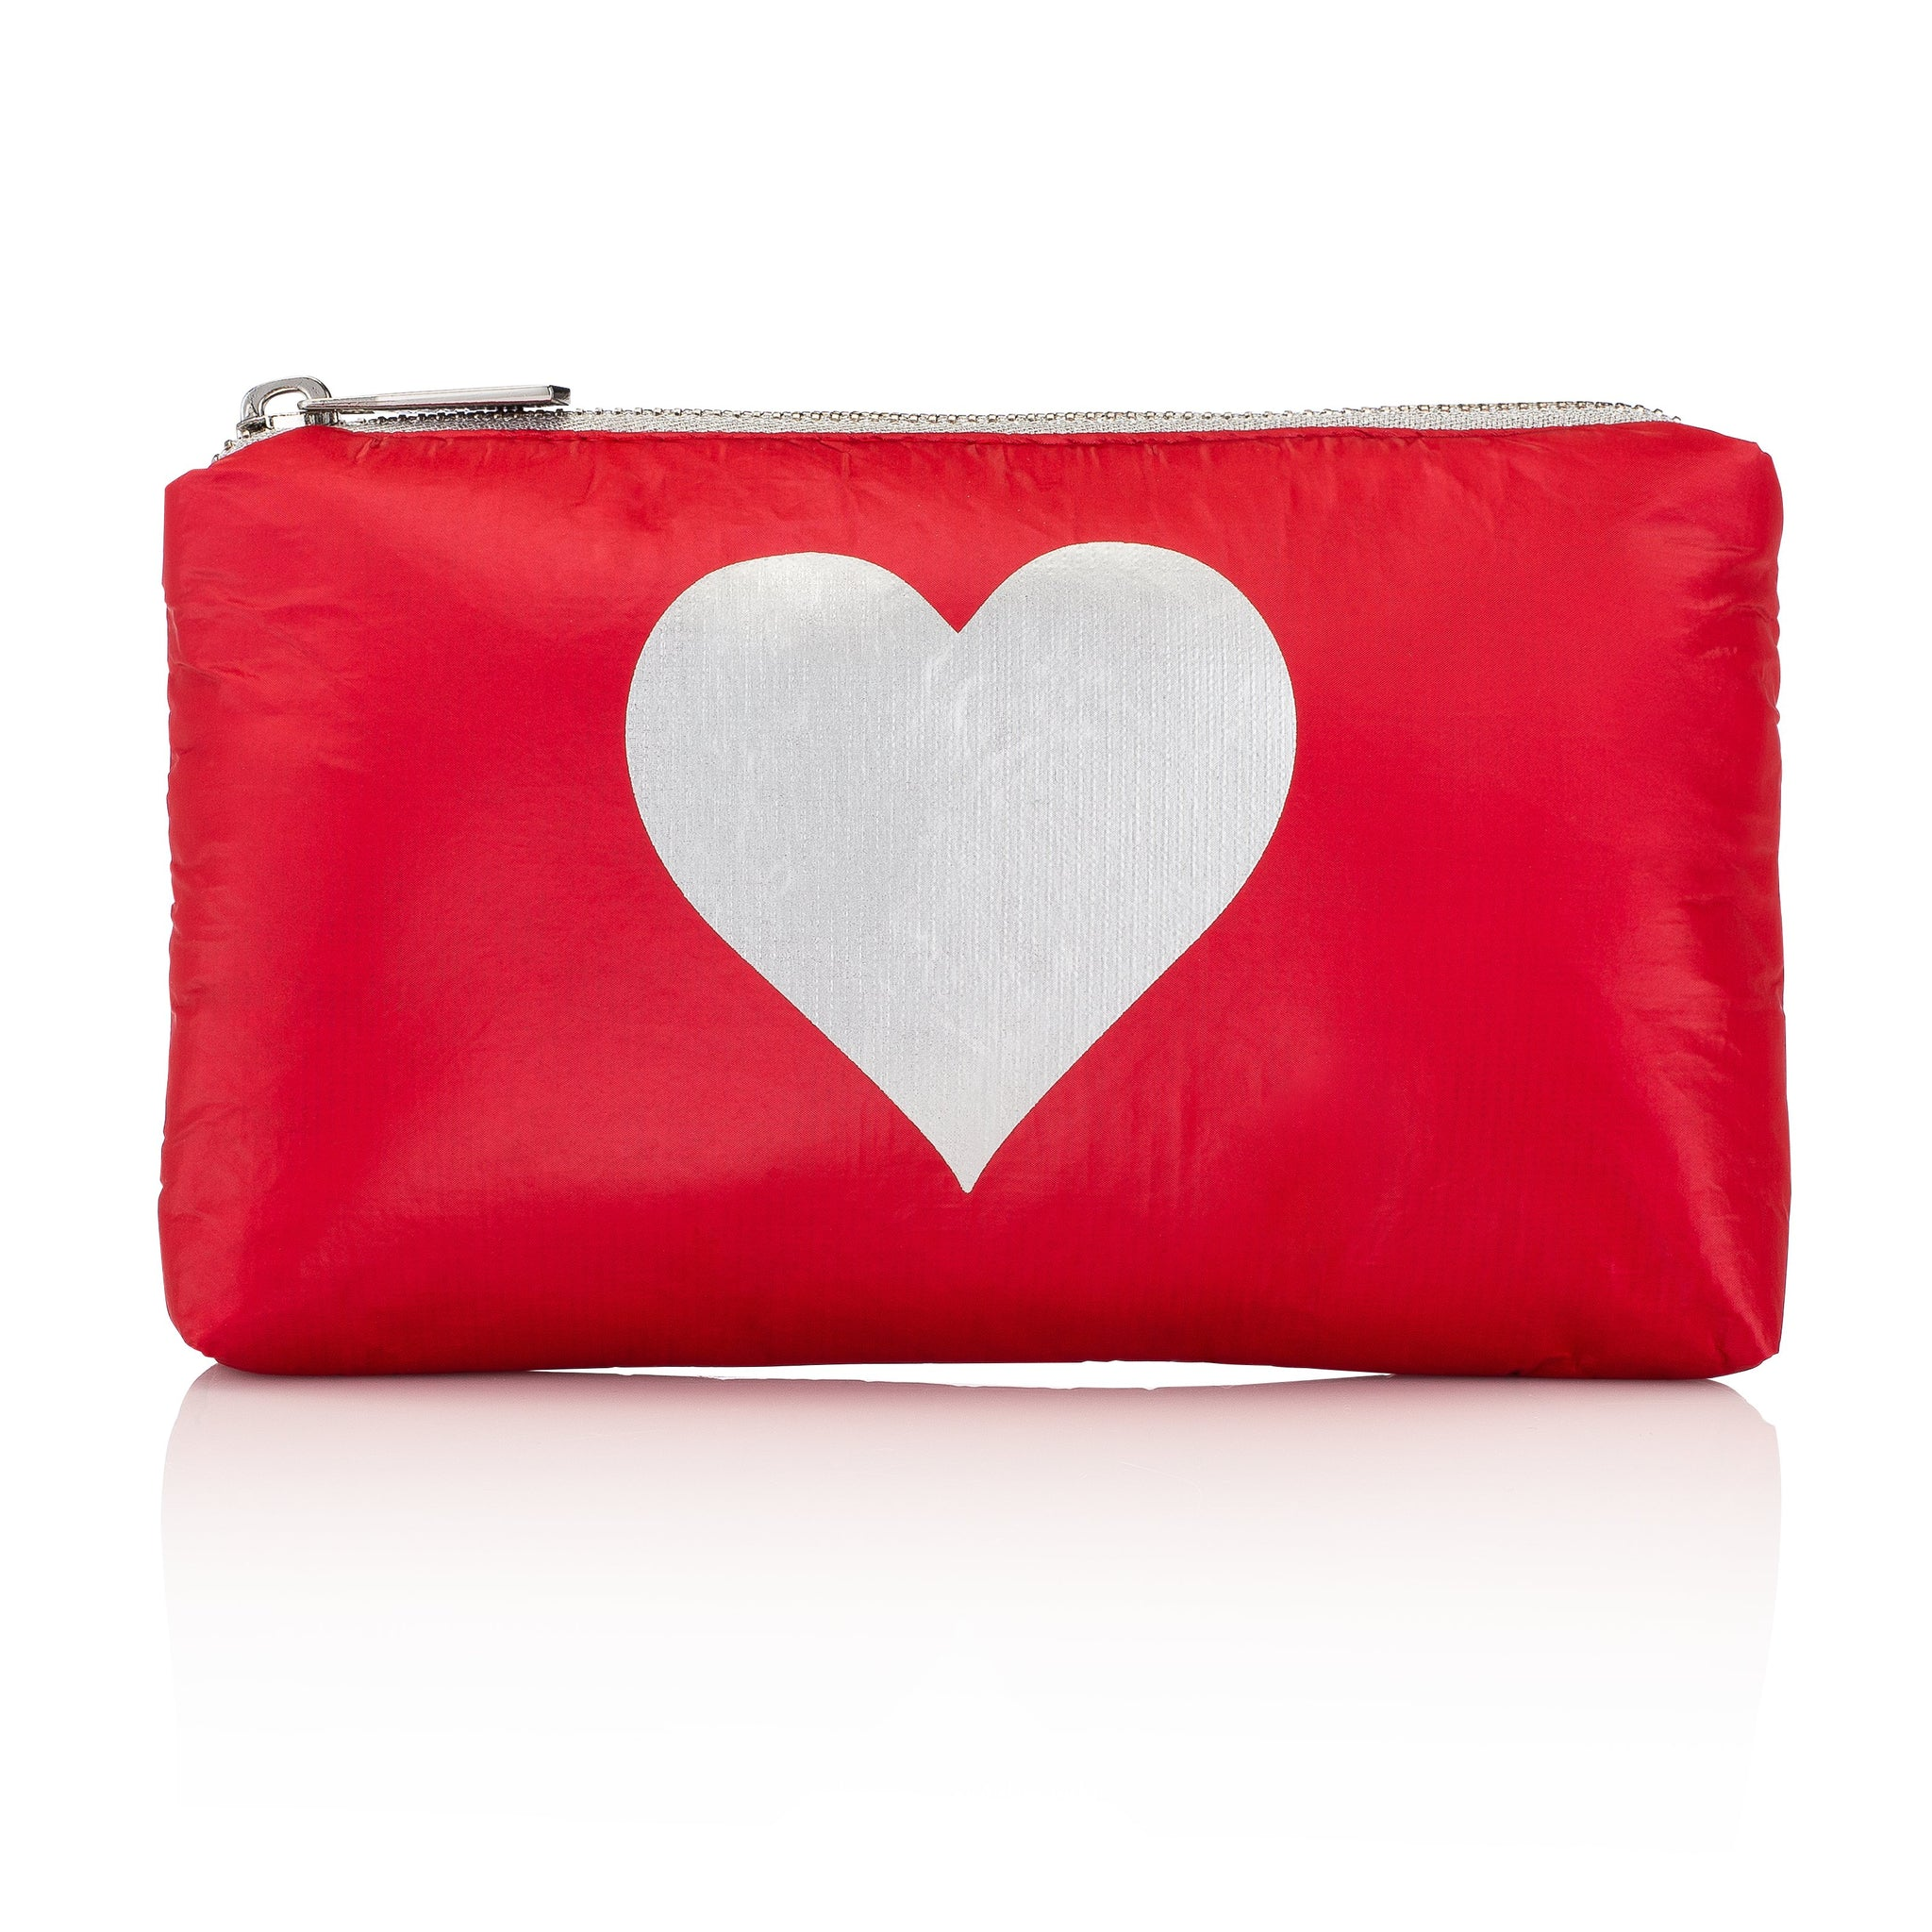 Cute Clutch - Travel Pouch - Mini Padded Pack - Chili Pepper Red with Metallic Silver Heart